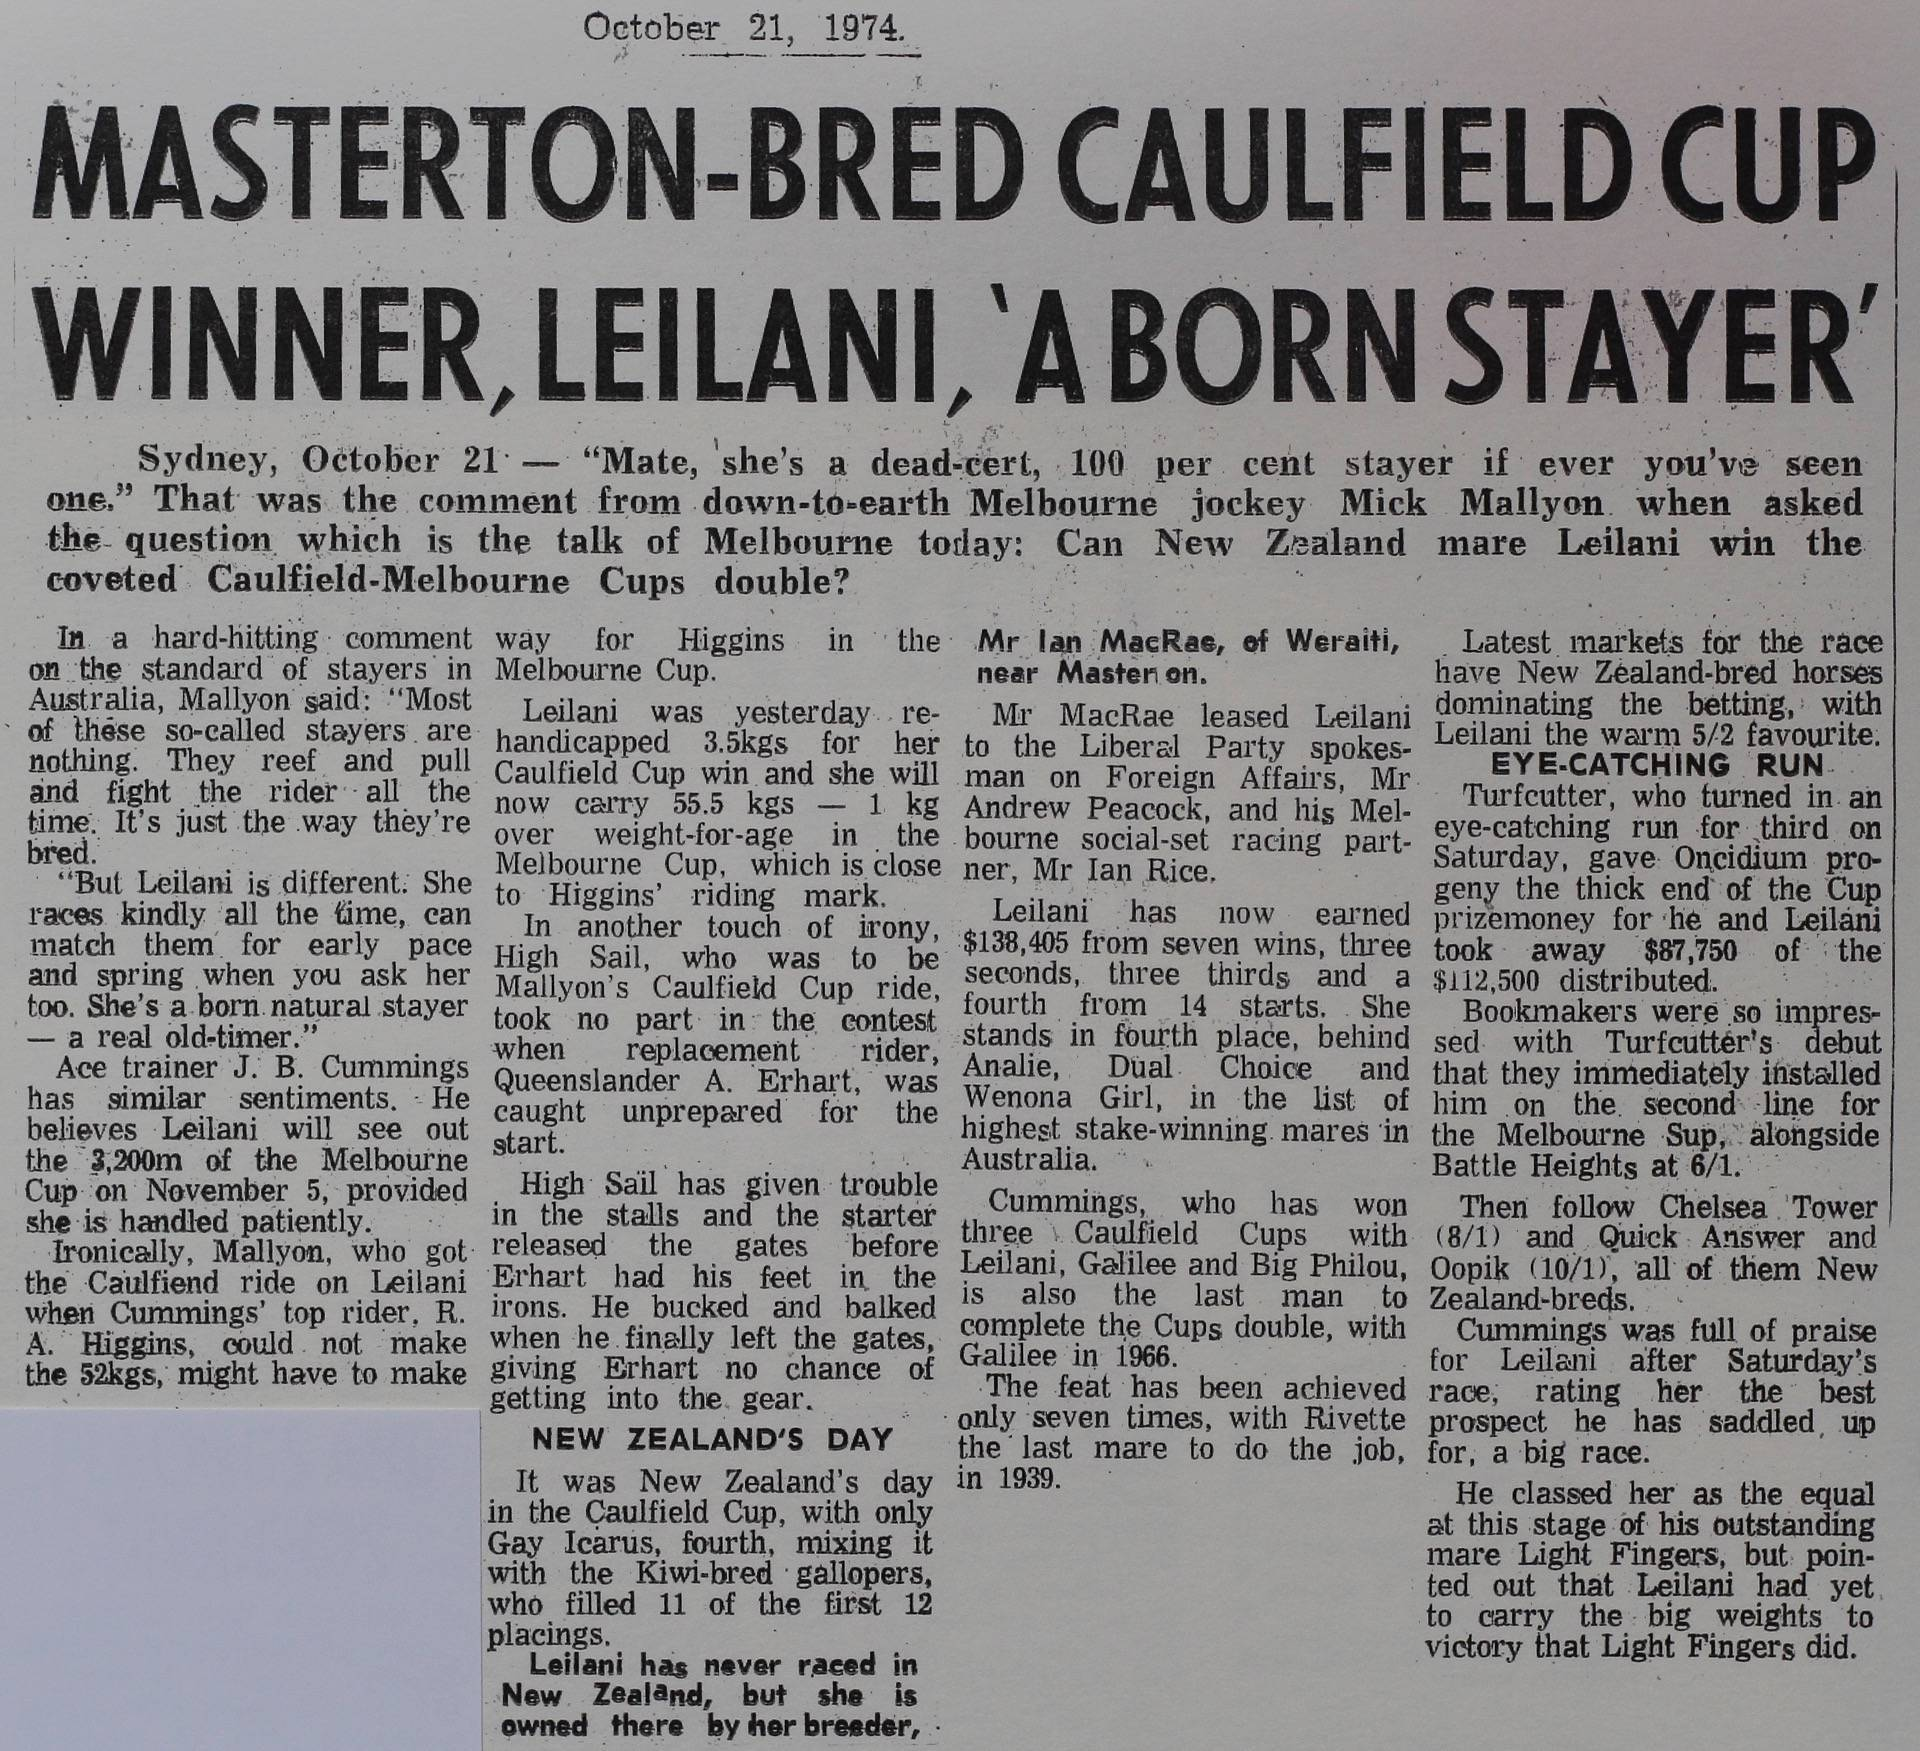 Masterton-bred Caulfield Cup winner, Leilani, 'a born stayer'